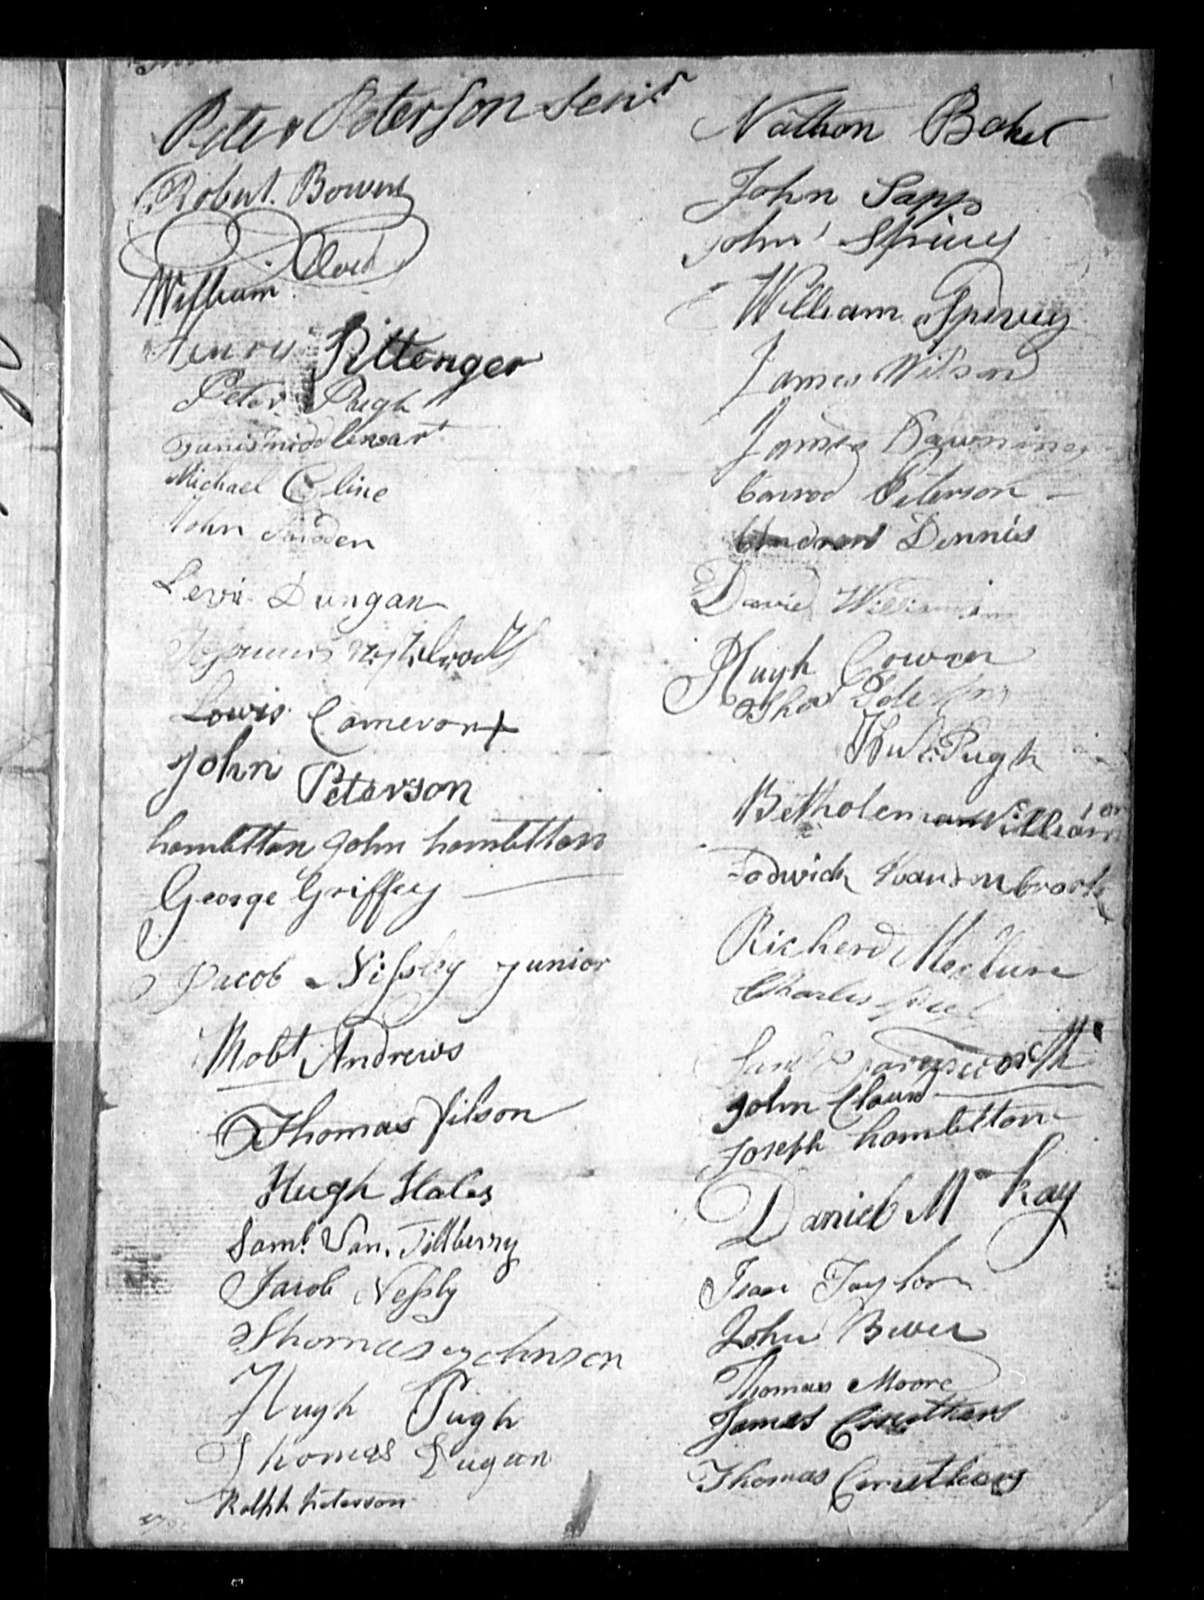 November 18, 1796, Ohio, To authorise Alexander Stevenson, a justice of the peace, to perform marriages.